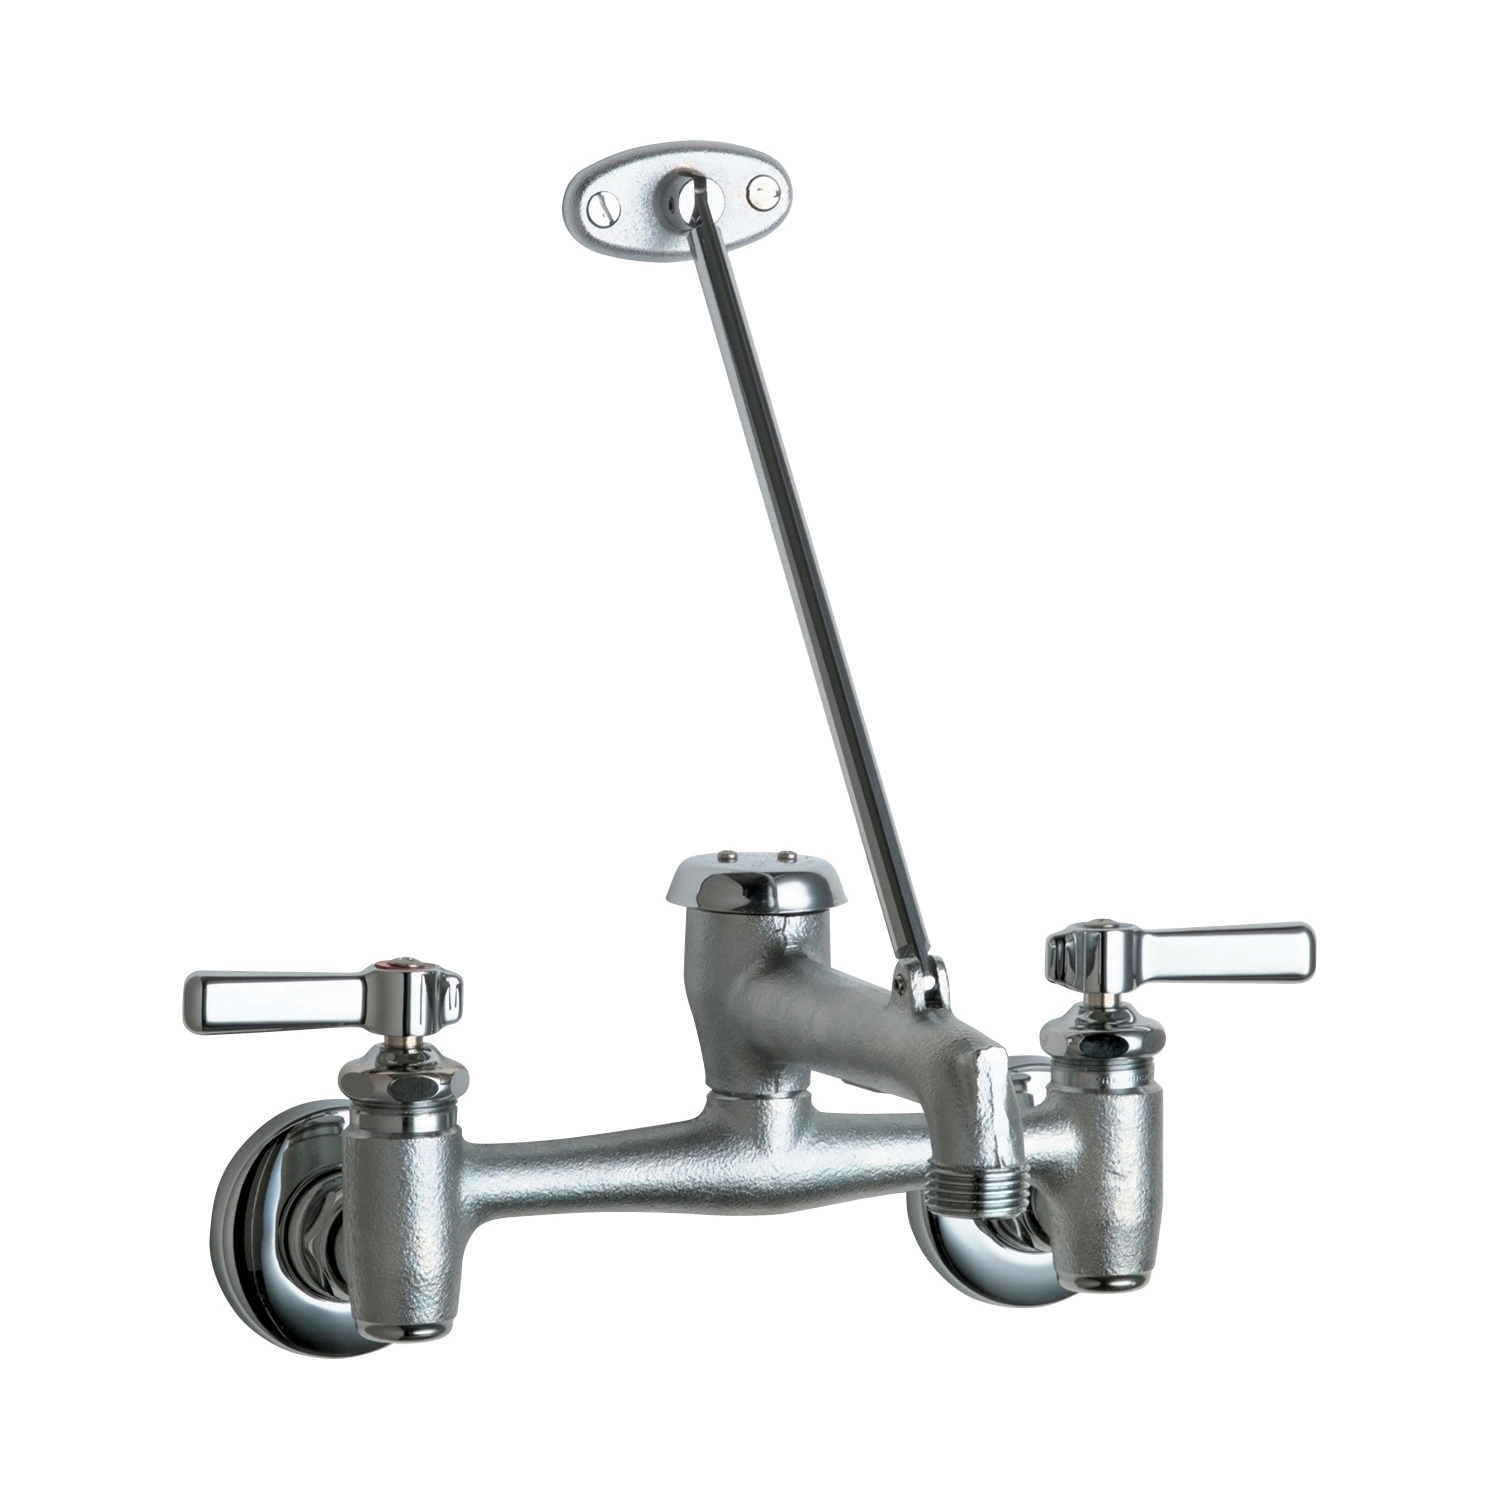 Chicago Faucet® 897-RCF Hot and Cold Water Sink Faucet, Wall Mount, 2 Handles, 7-5/8 to 8-3/8 in Center, Chrome Plated